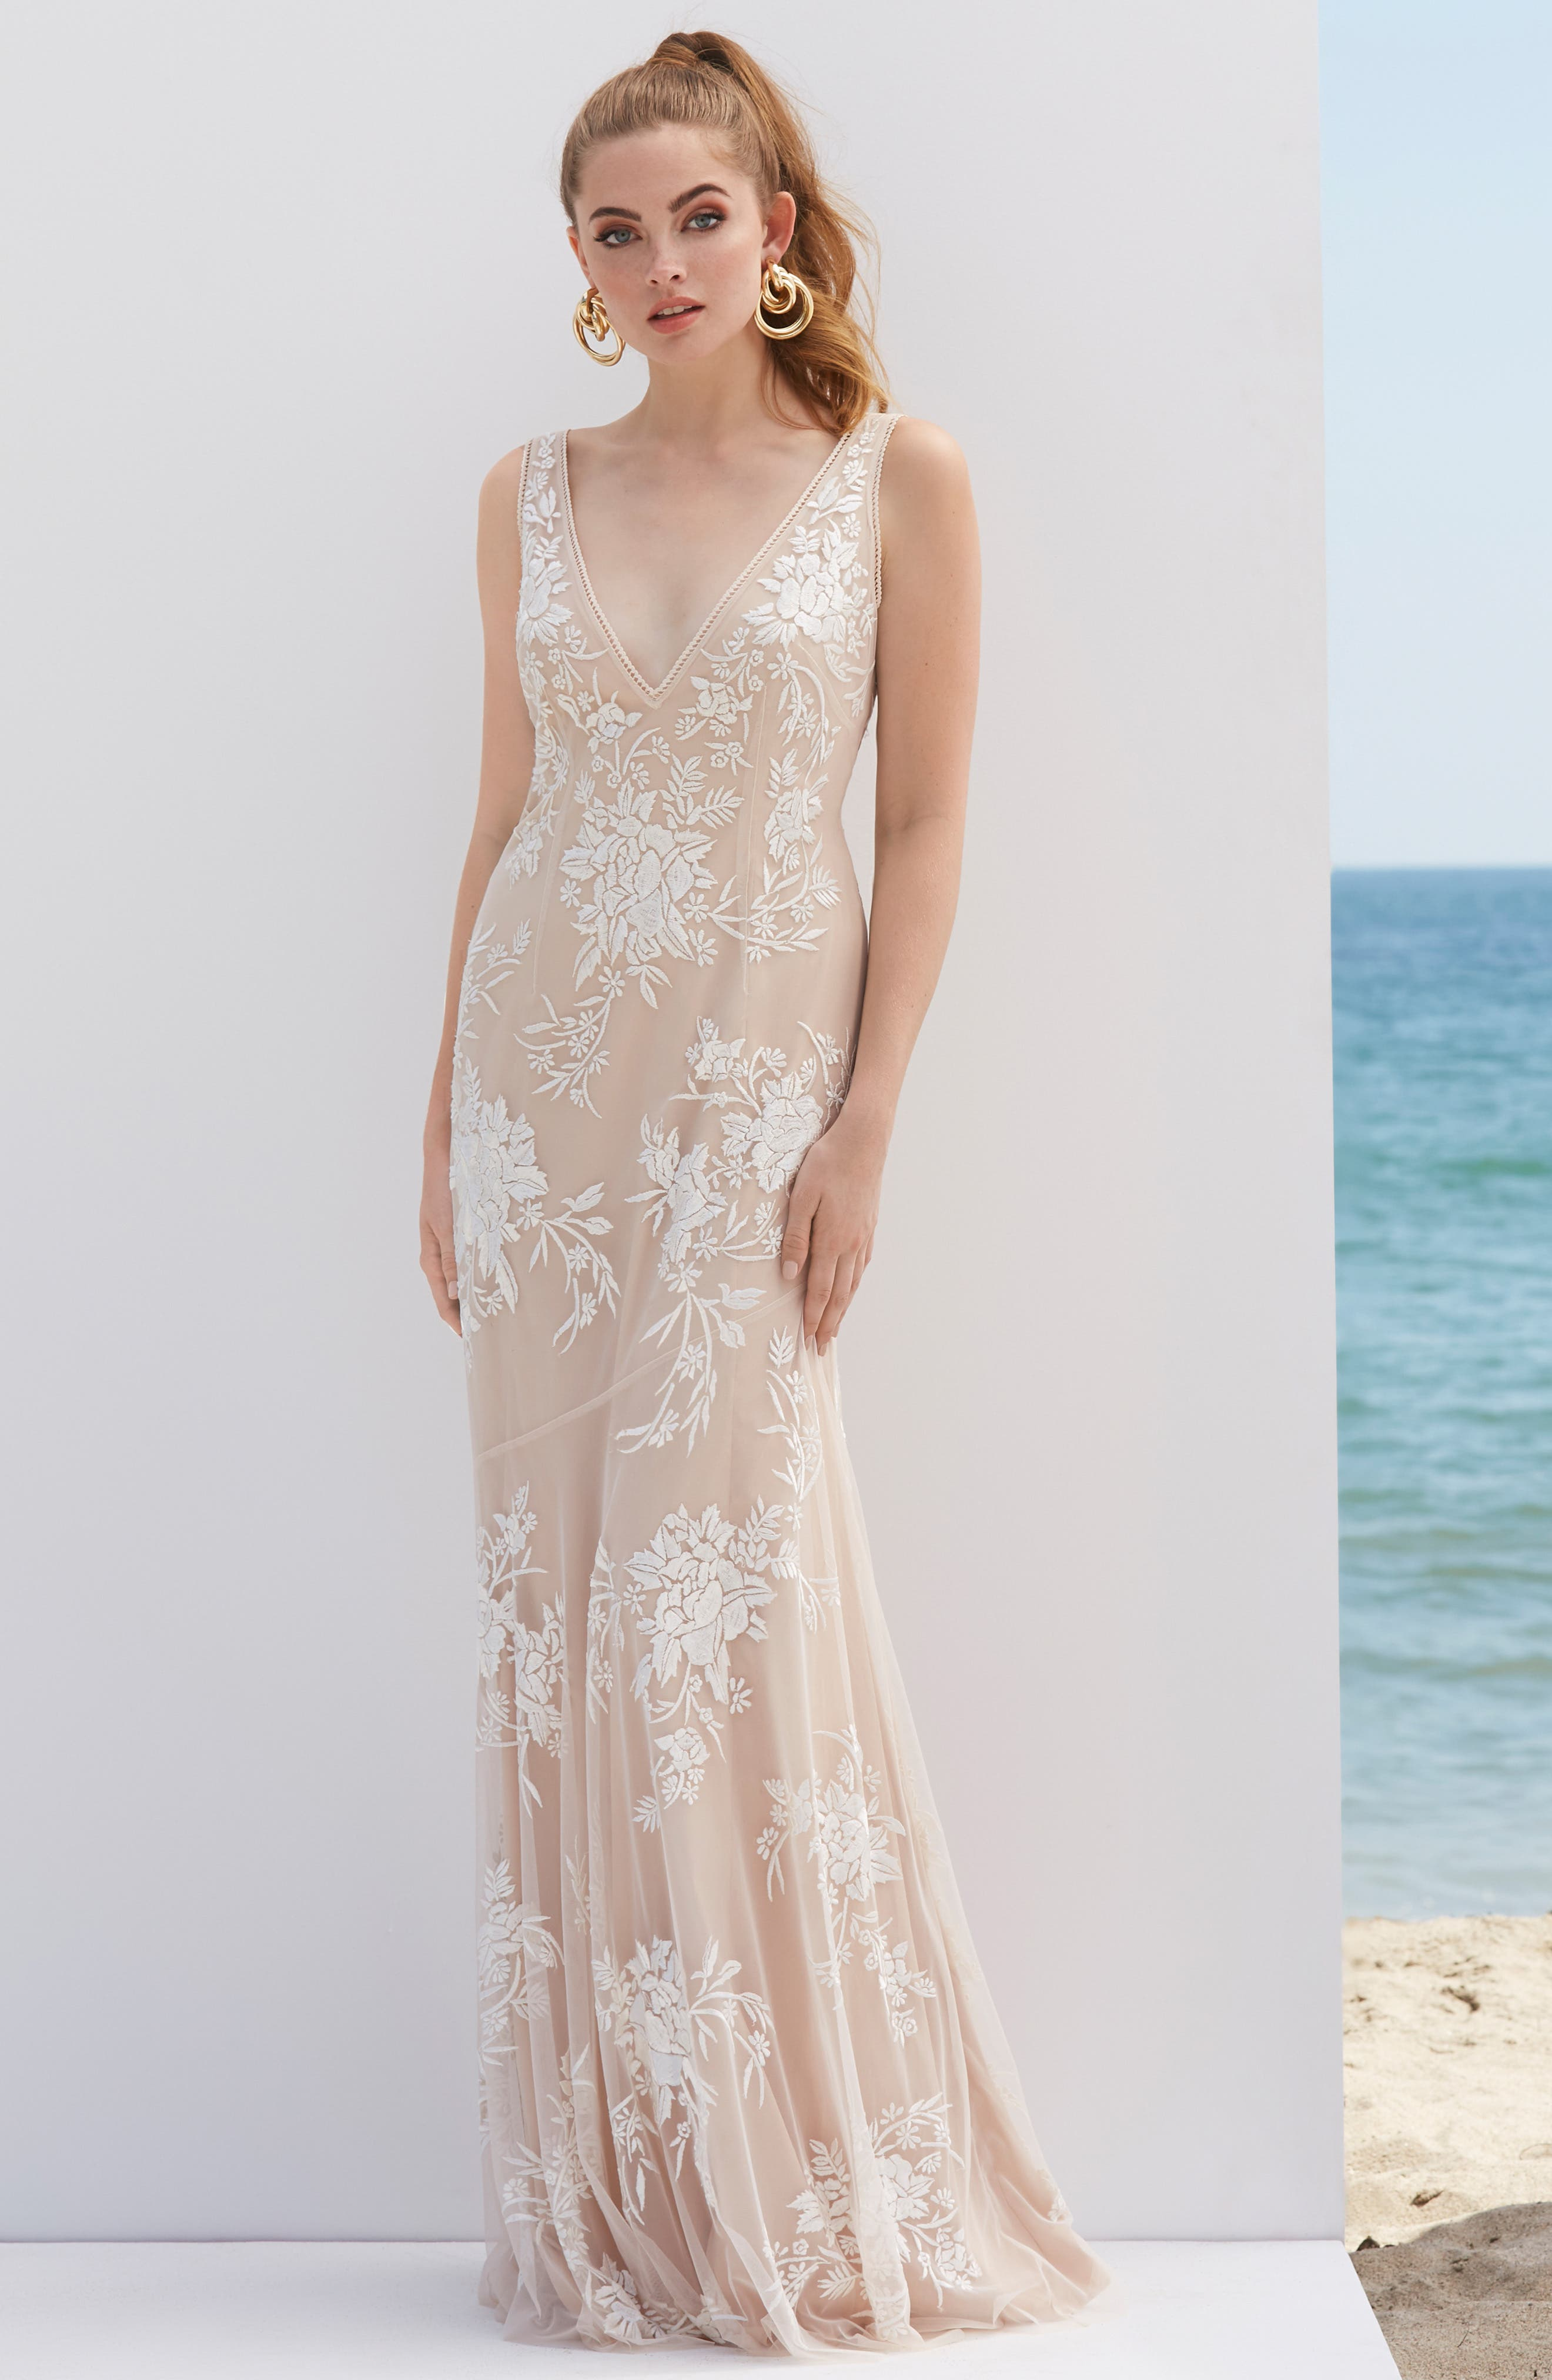 Vintage Inspired Wedding Dress | Vintage Style Wedding Dresses Womens By Watters V-Neck Embroidered Wedding Dress $1,250.00 AT vintagedancer.com